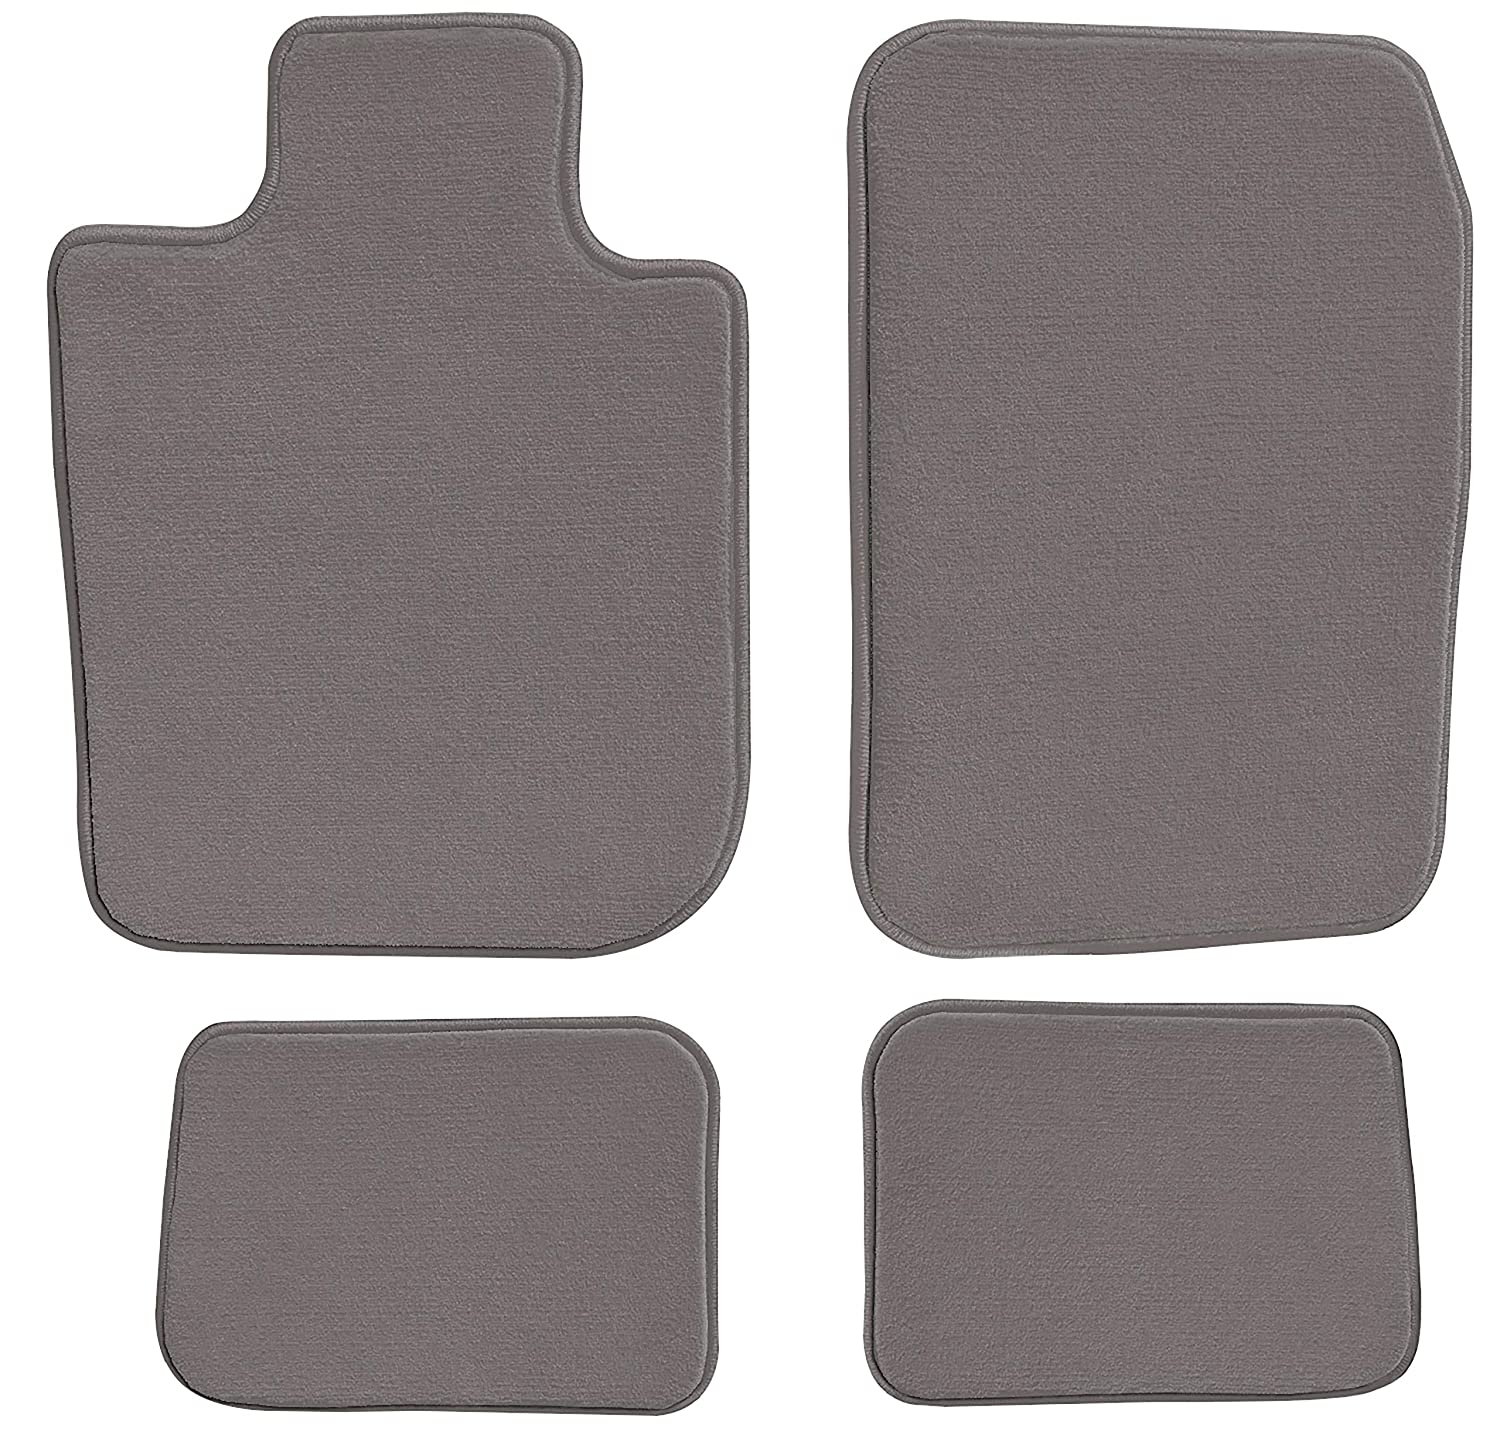 2006 Dodge Stratus Sedan Grey Loop Driver 2003 2004 2002 2001 2005 Passenger /& Rear Floor GGBAILEY D4761A-S2A-GY-LP Custom Fit Car Mats for 2000